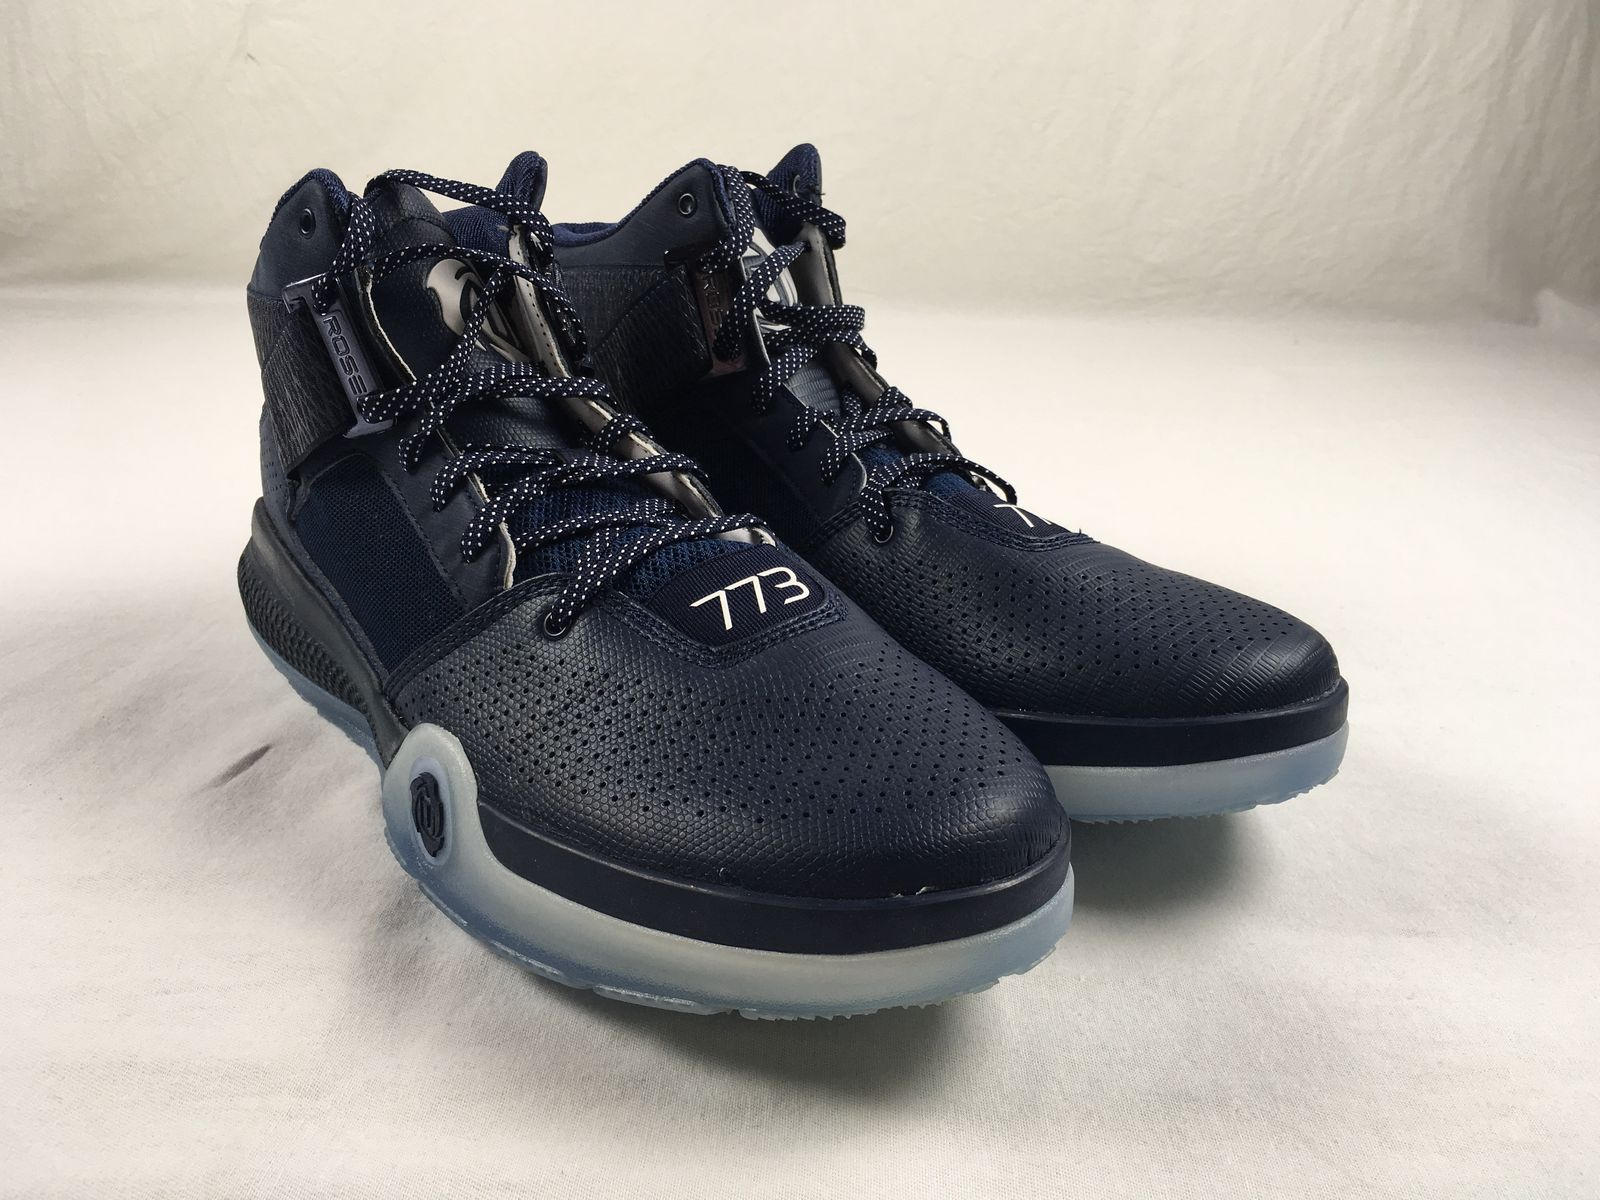 0fd9b158607a Details about NEW adidas D Rose 7 - Navy Blue Basketball Shoes (Men s 15)